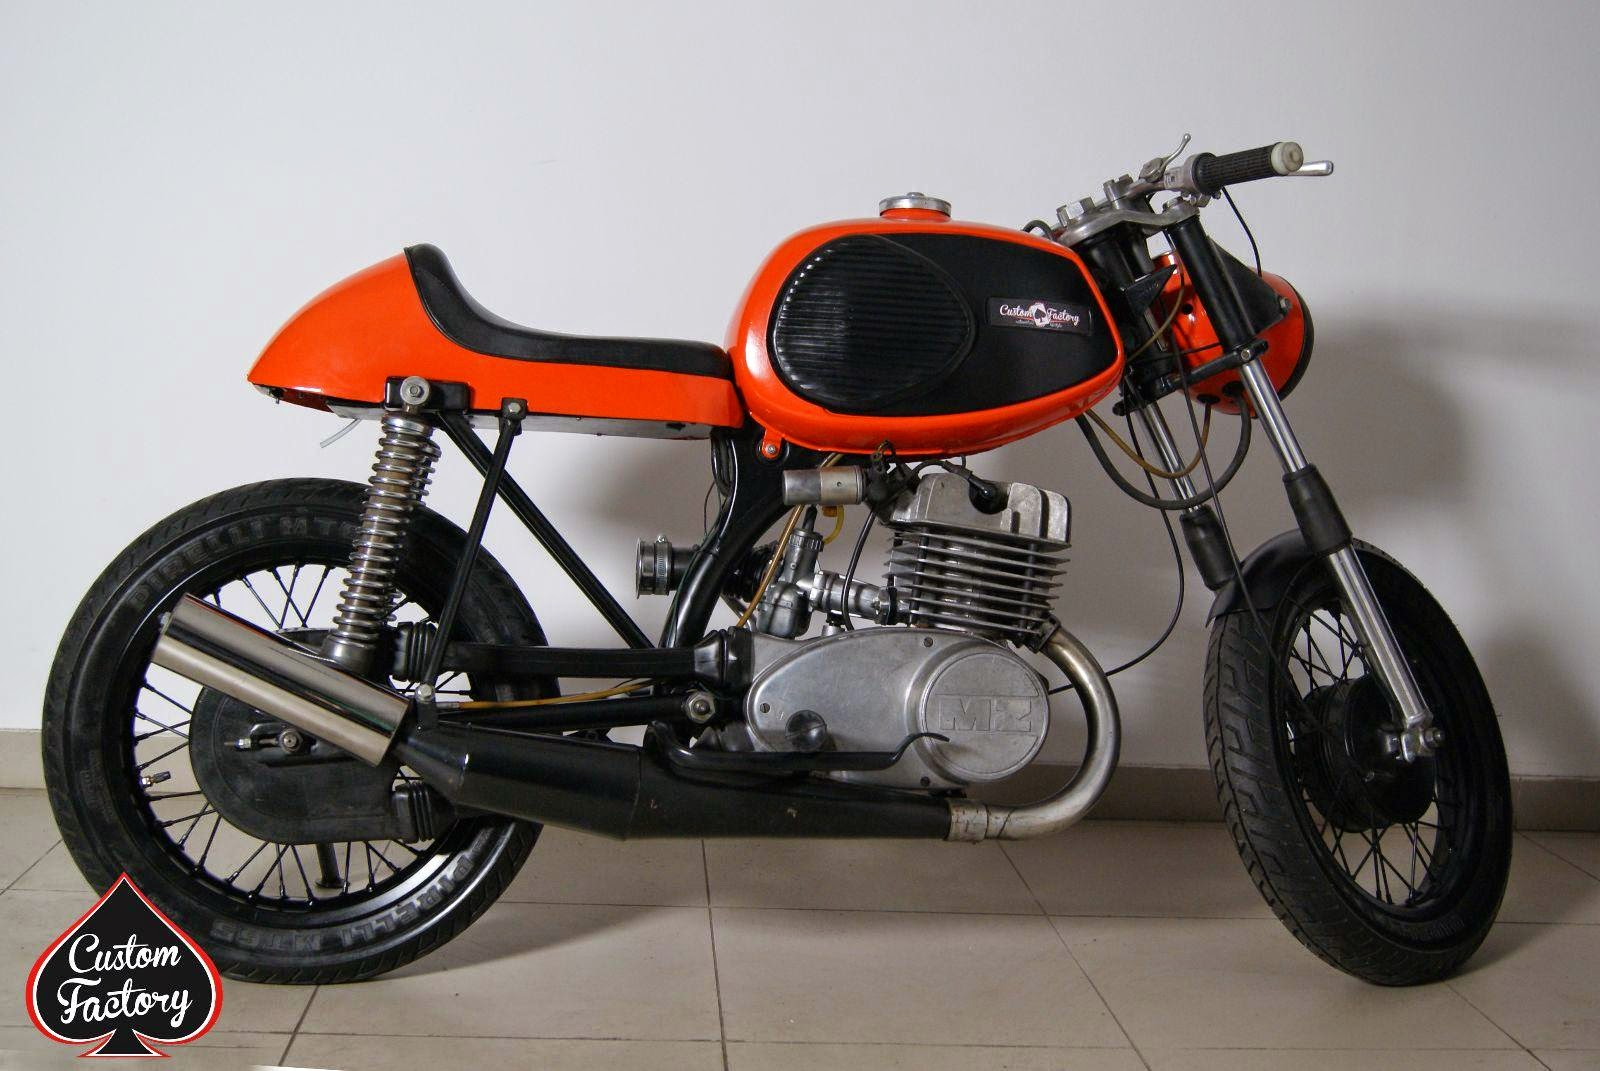 mz ts 250 cafe racer 99garage cafe racers customs passion inspiration. Black Bedroom Furniture Sets. Home Design Ideas